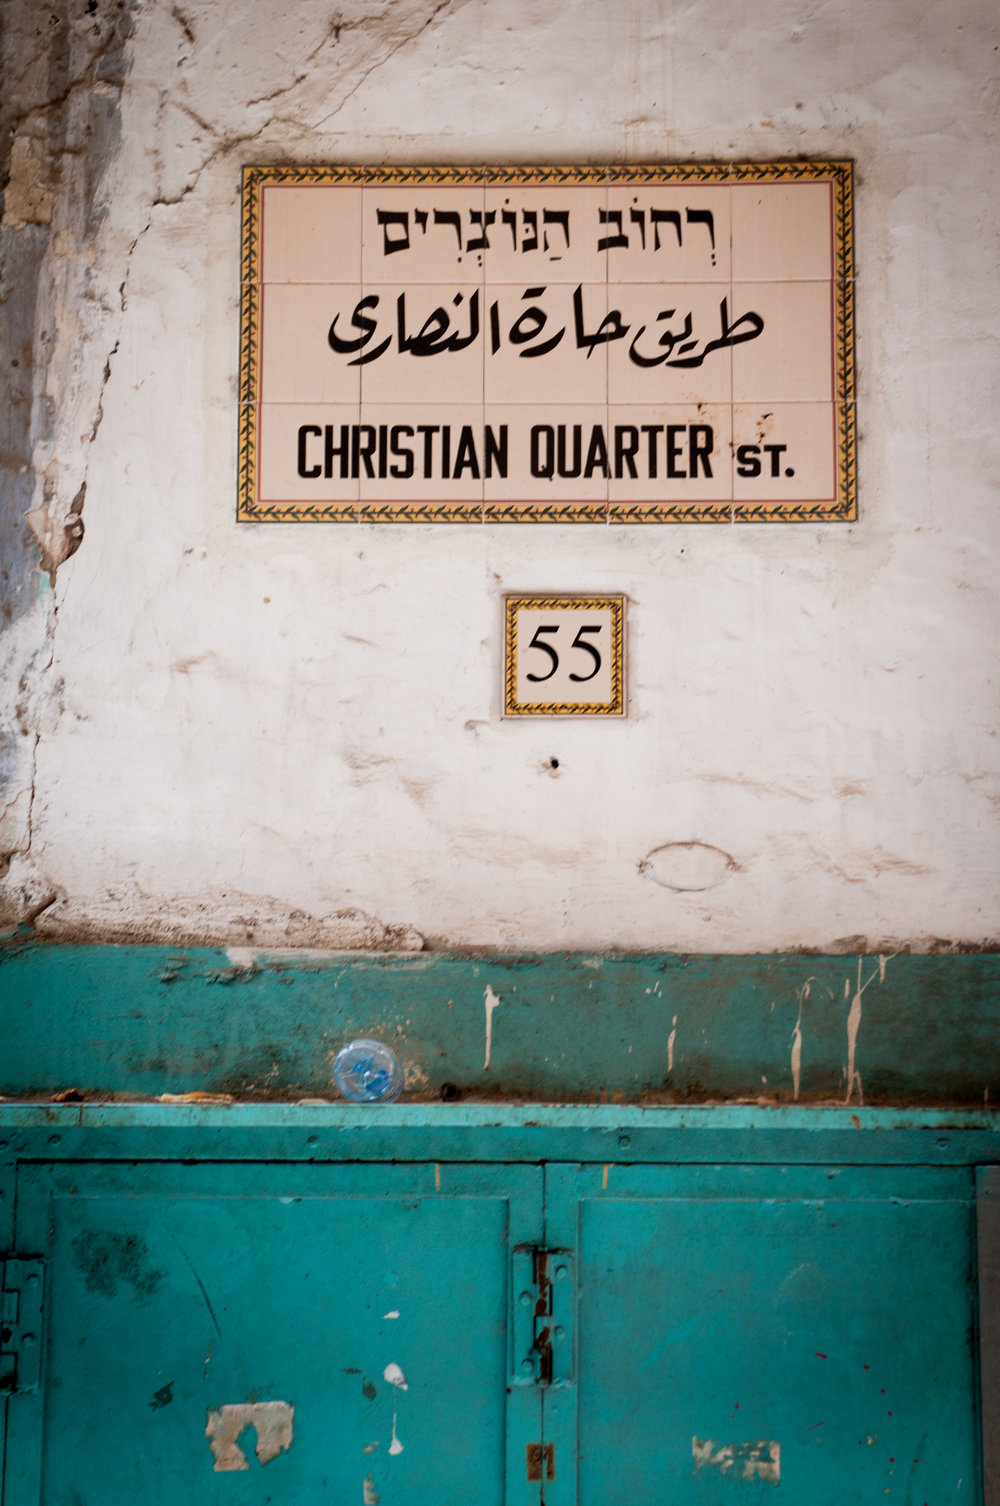 Where Are The Christians? - Although I did not meet any Christians or see a church, presumably there is a segment of Christians here as there are in Lebanon and surrounding Arab region. Afterall Christ is as much their ancestor of Christianity as Judaism, and arguably of Islam as well!